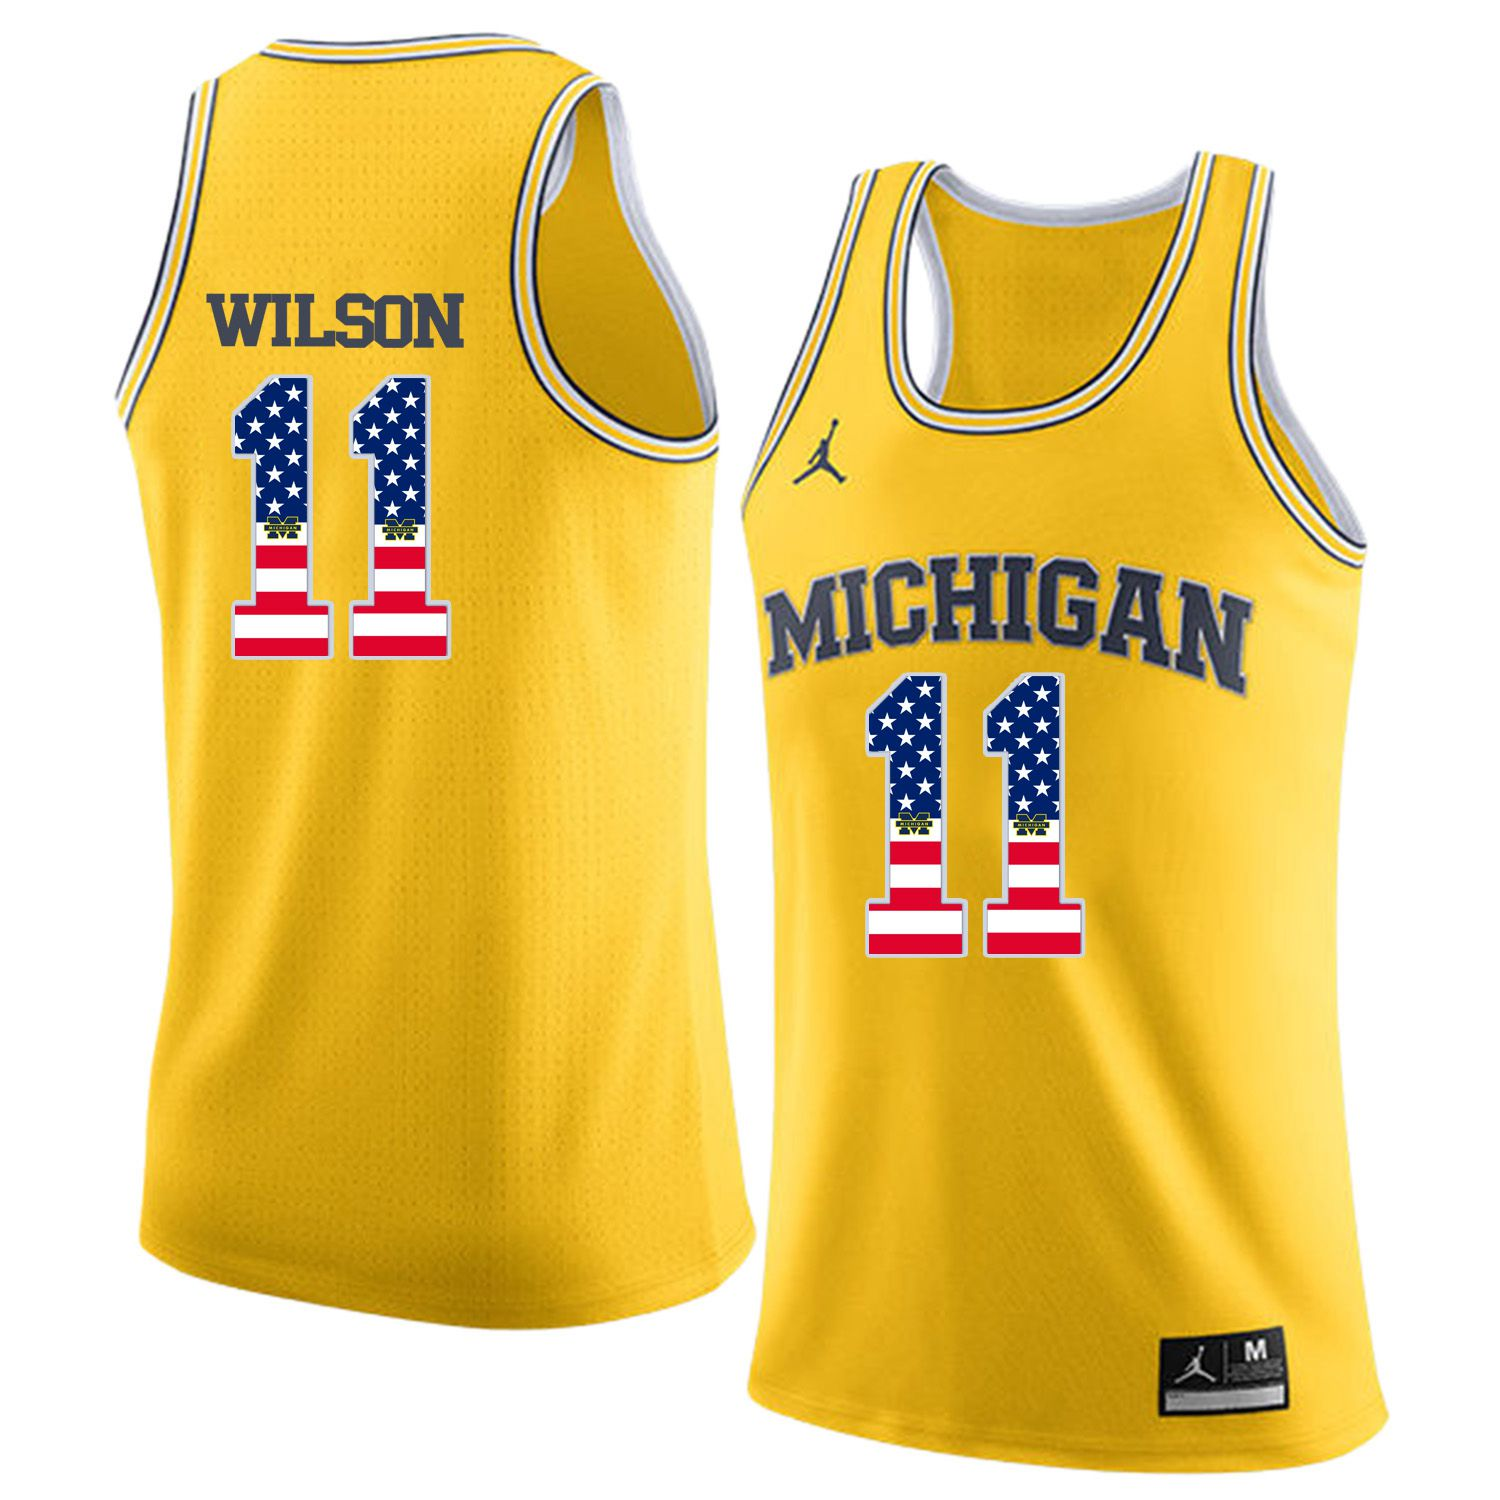 Men Jordan University of Michigan Basketball Yellow 11 Wilson Flag Customized NCAA Jerseys